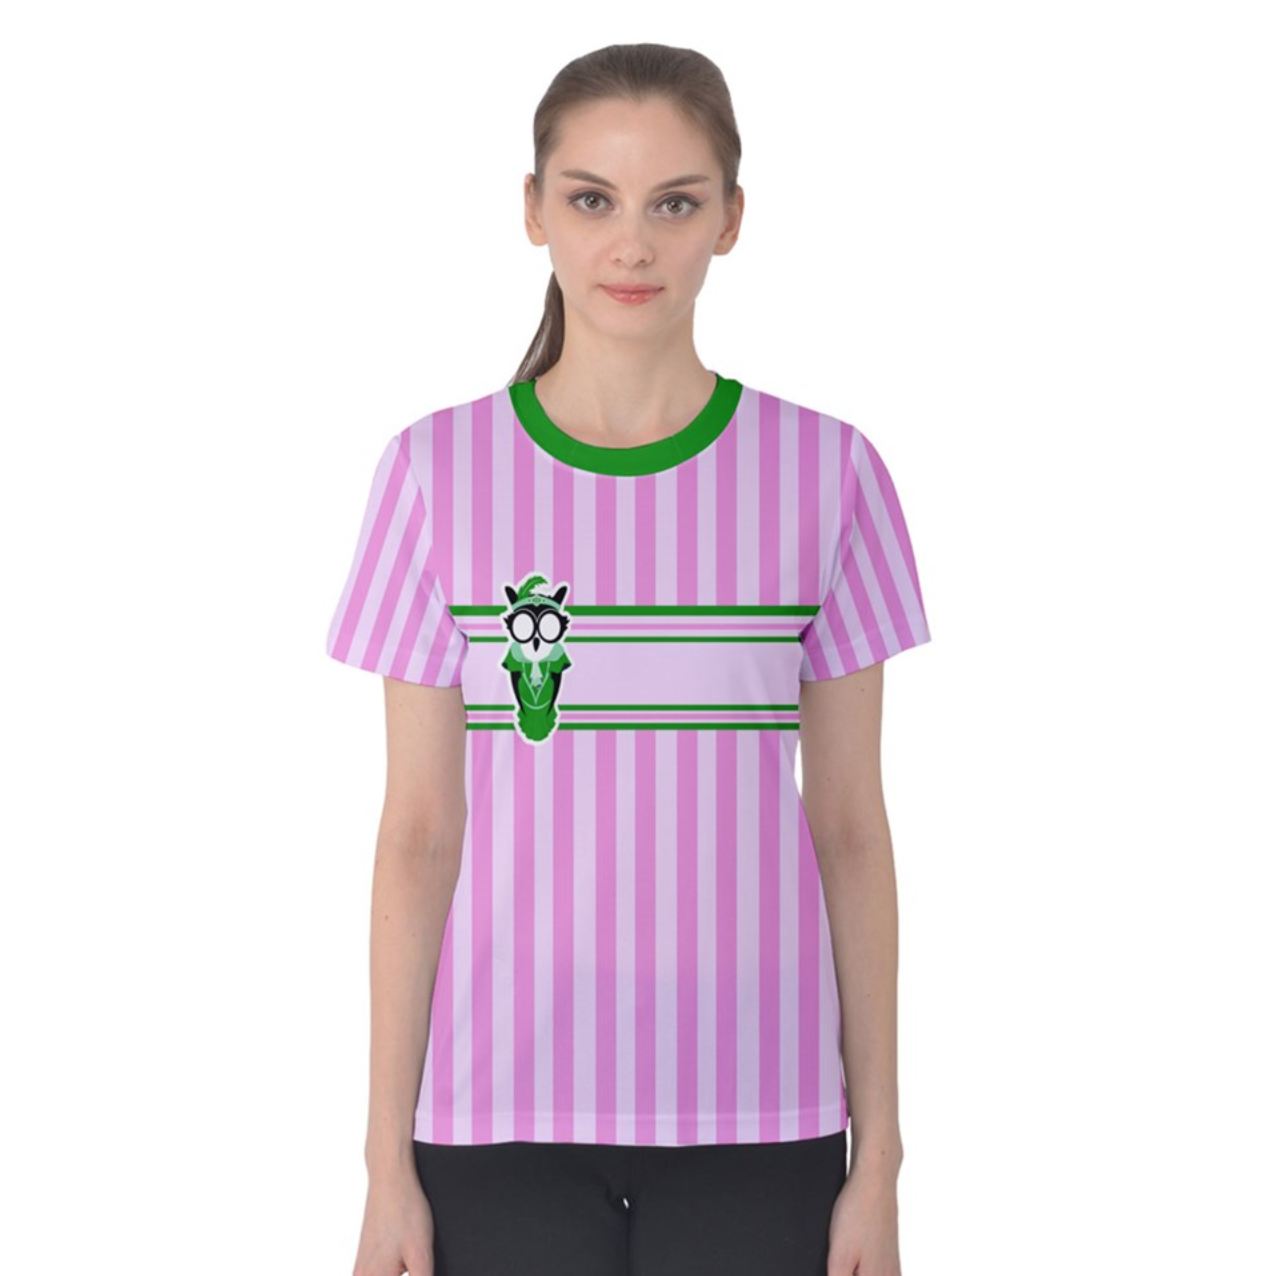 Candy Store Owl Women's Cotton Tee (Striped pattern)